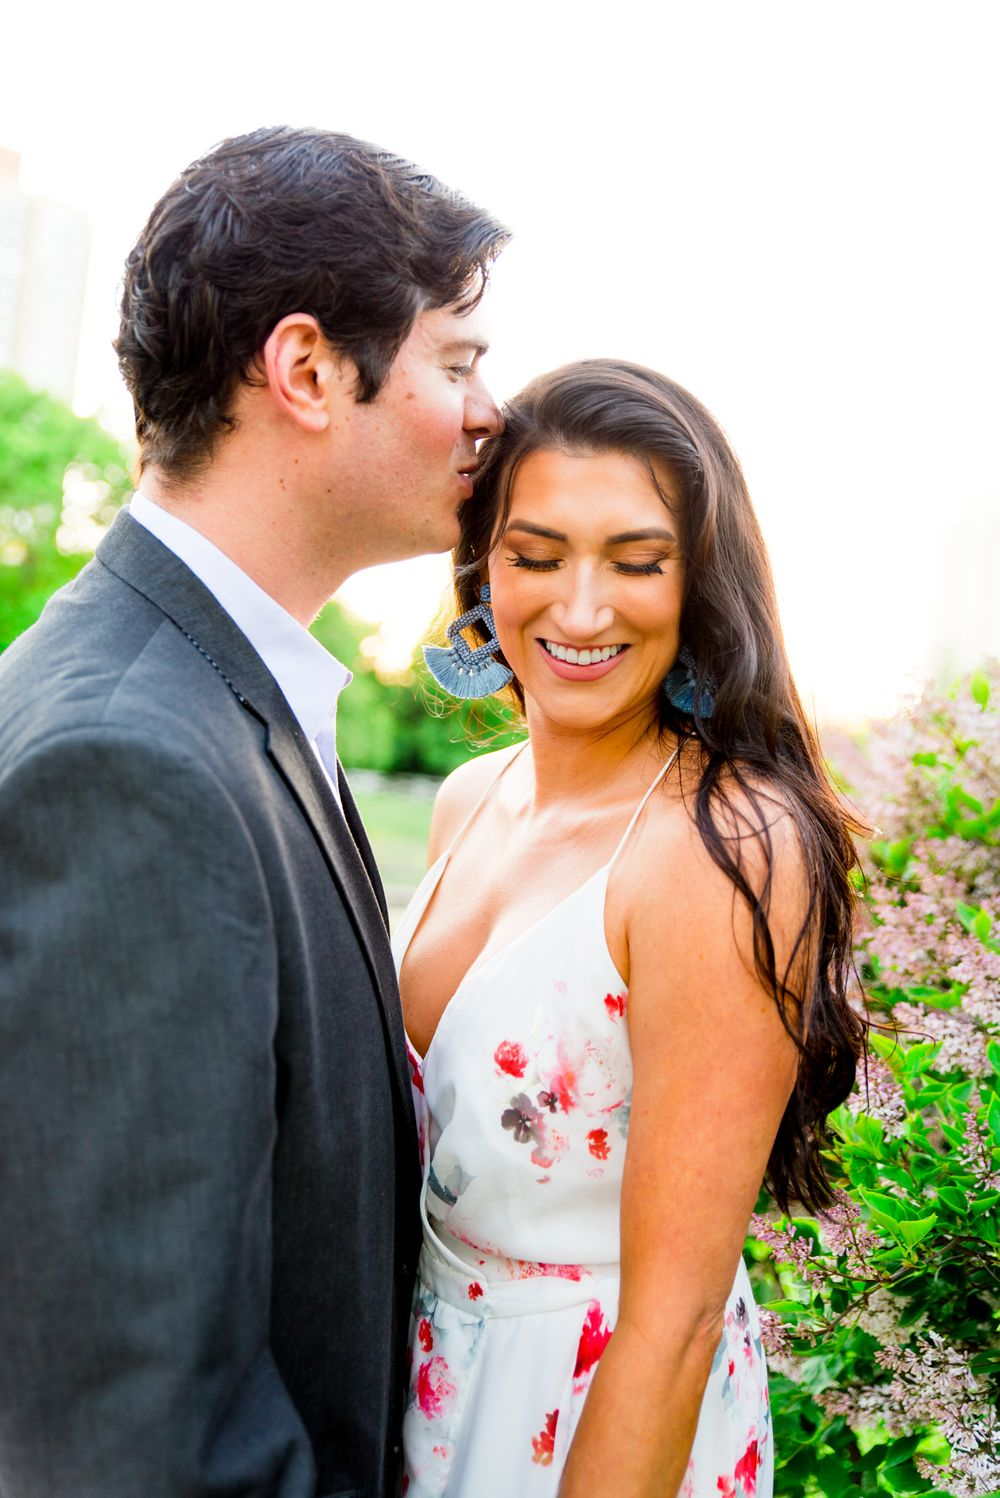 man in gray suit kissing woman in floral dress and blue earrings at sunset while she smiles for engagement pictures